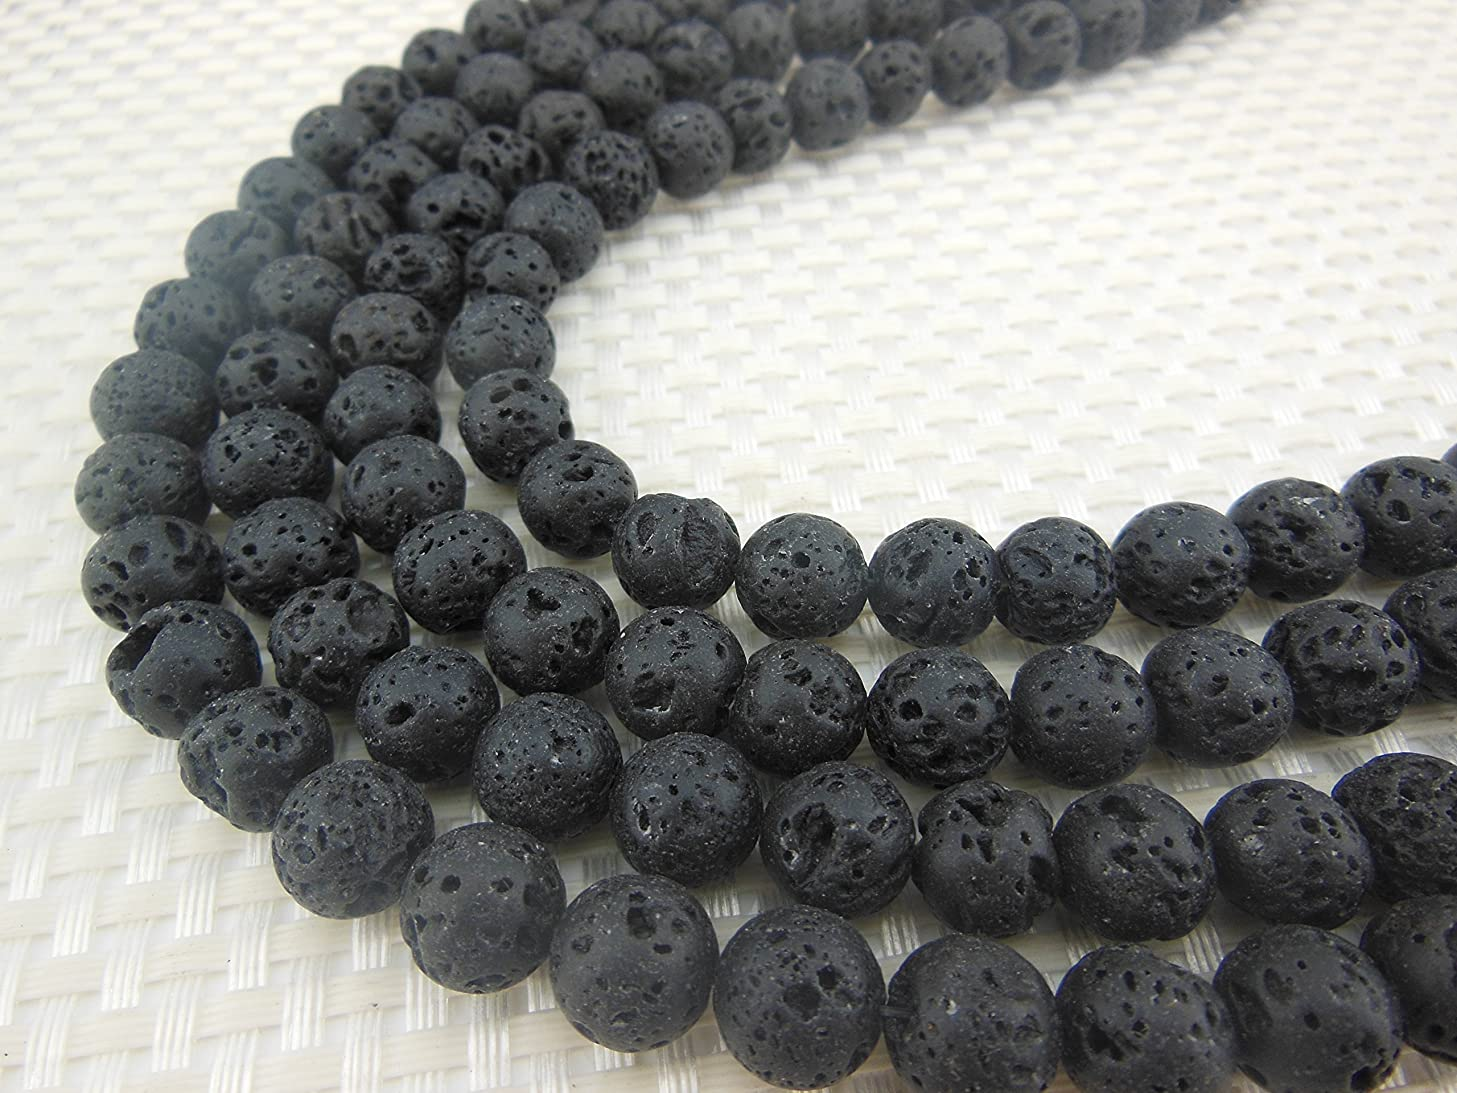 8MM Black Lava Stone Rock Gemstone Gem Round Loose Stone Beads for Jewelry Making&DIY&Design (8MM, RS-1028)